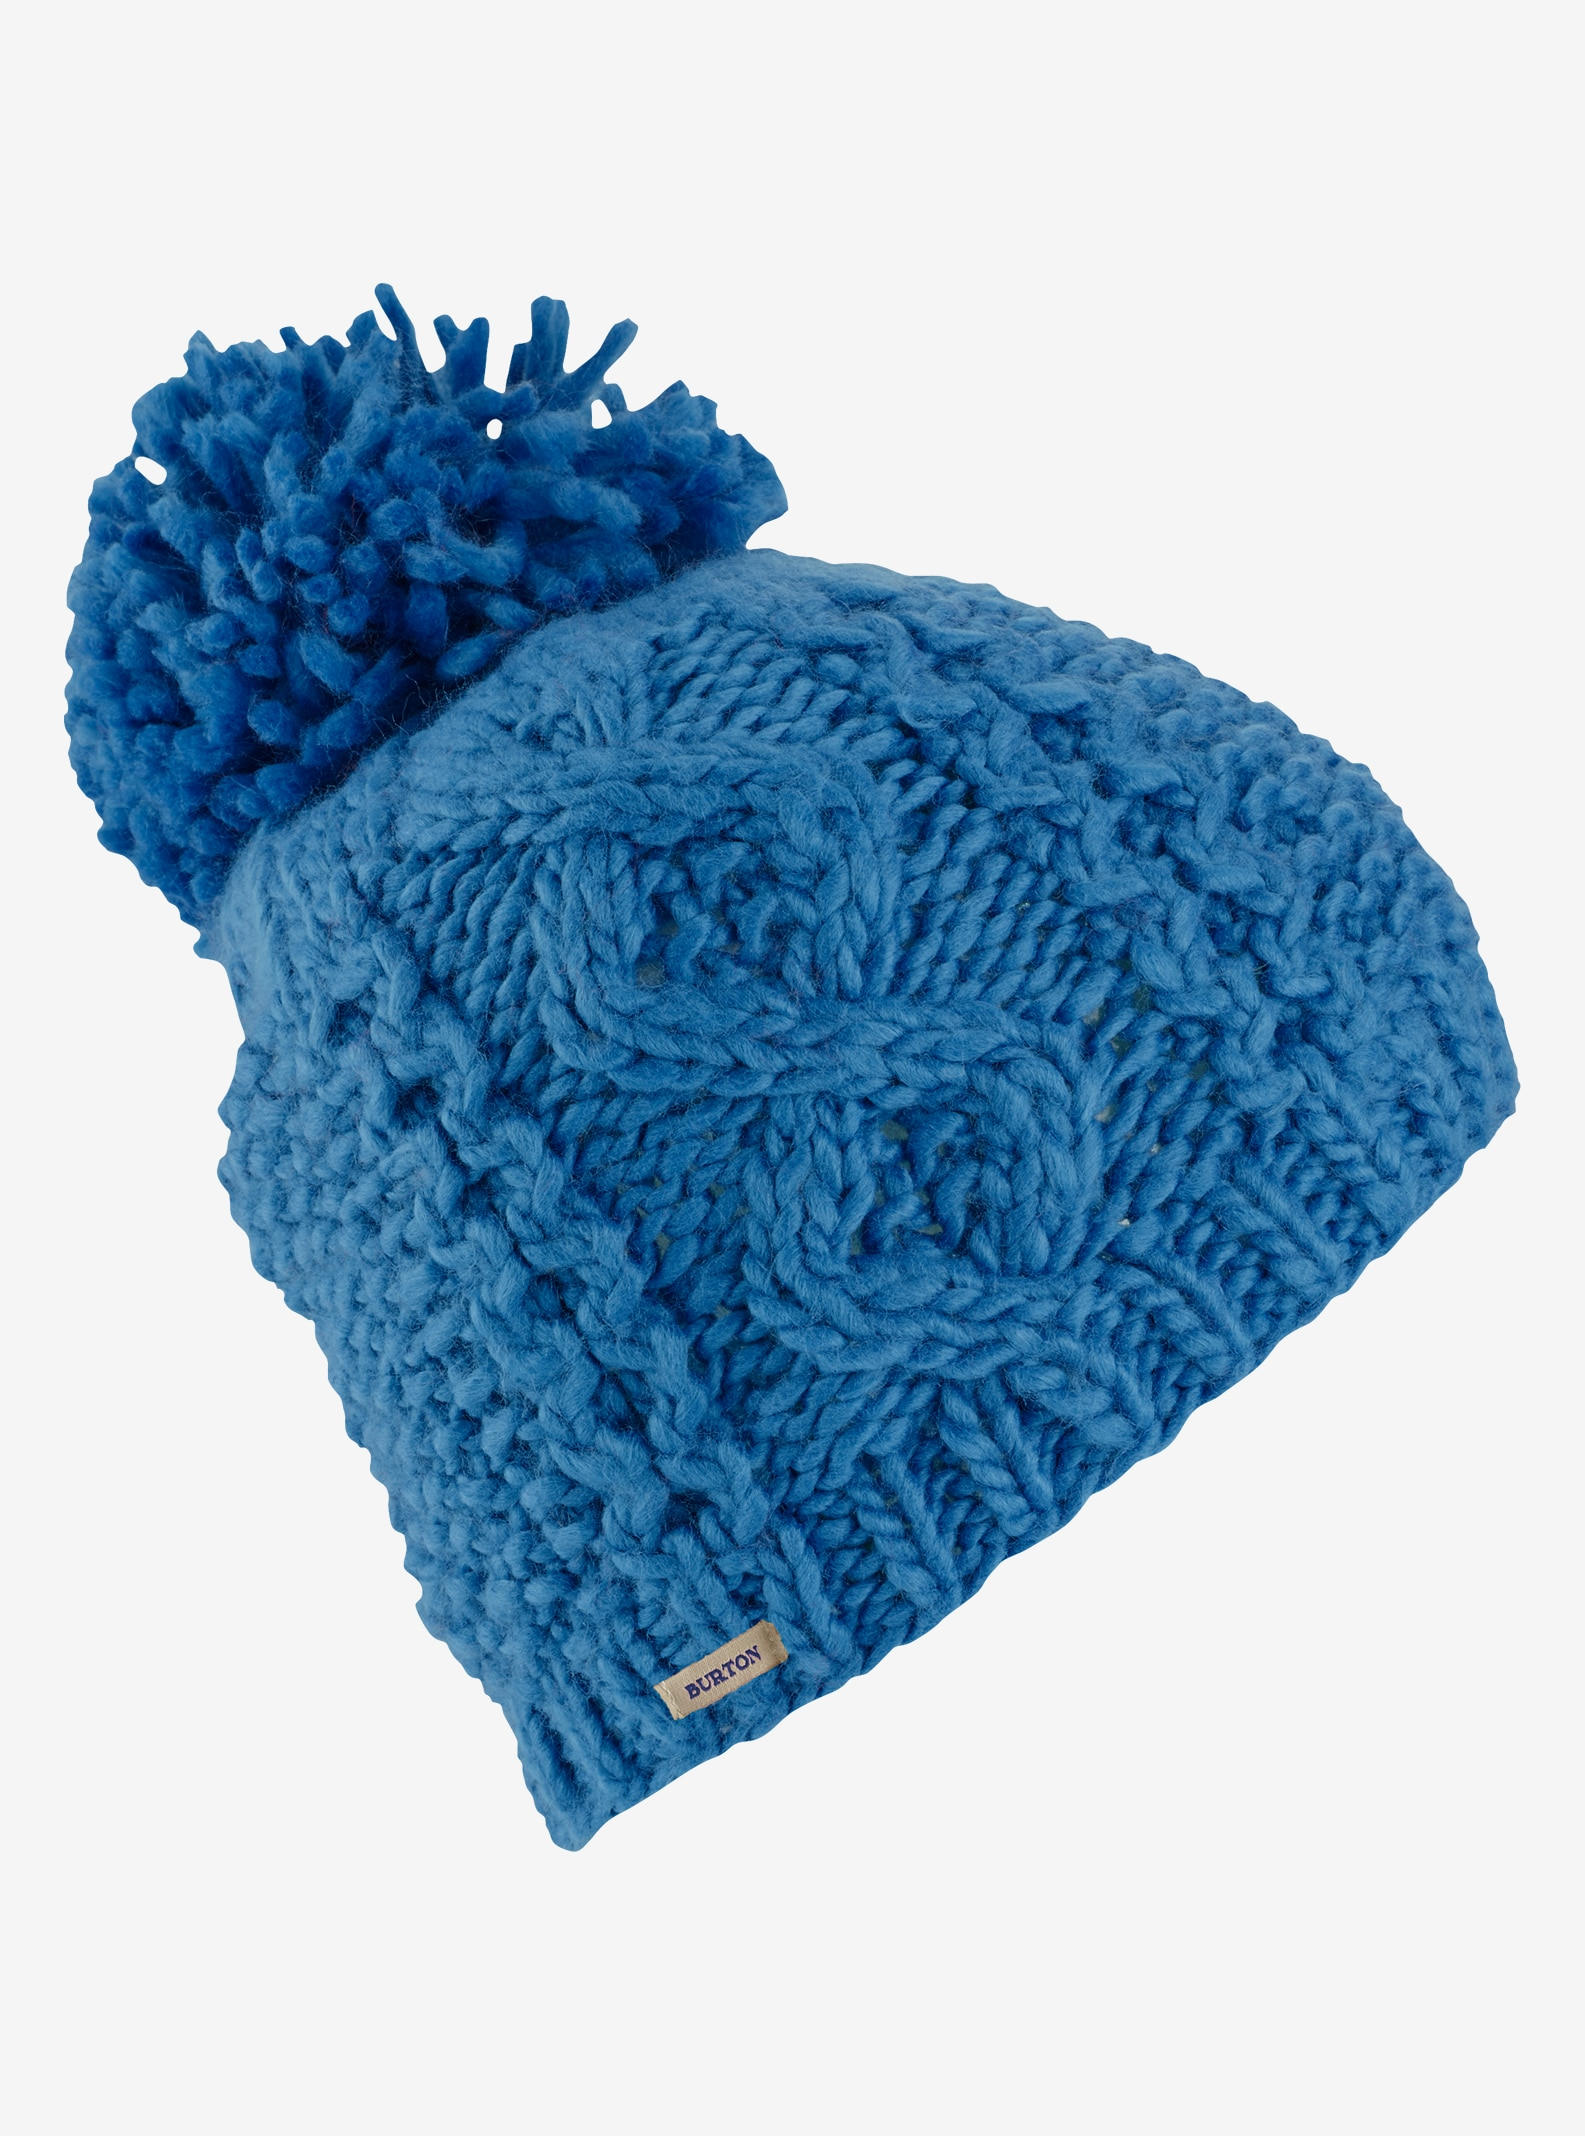 Women's Burton Katie Joe Beanie shown in Bright Cobalt